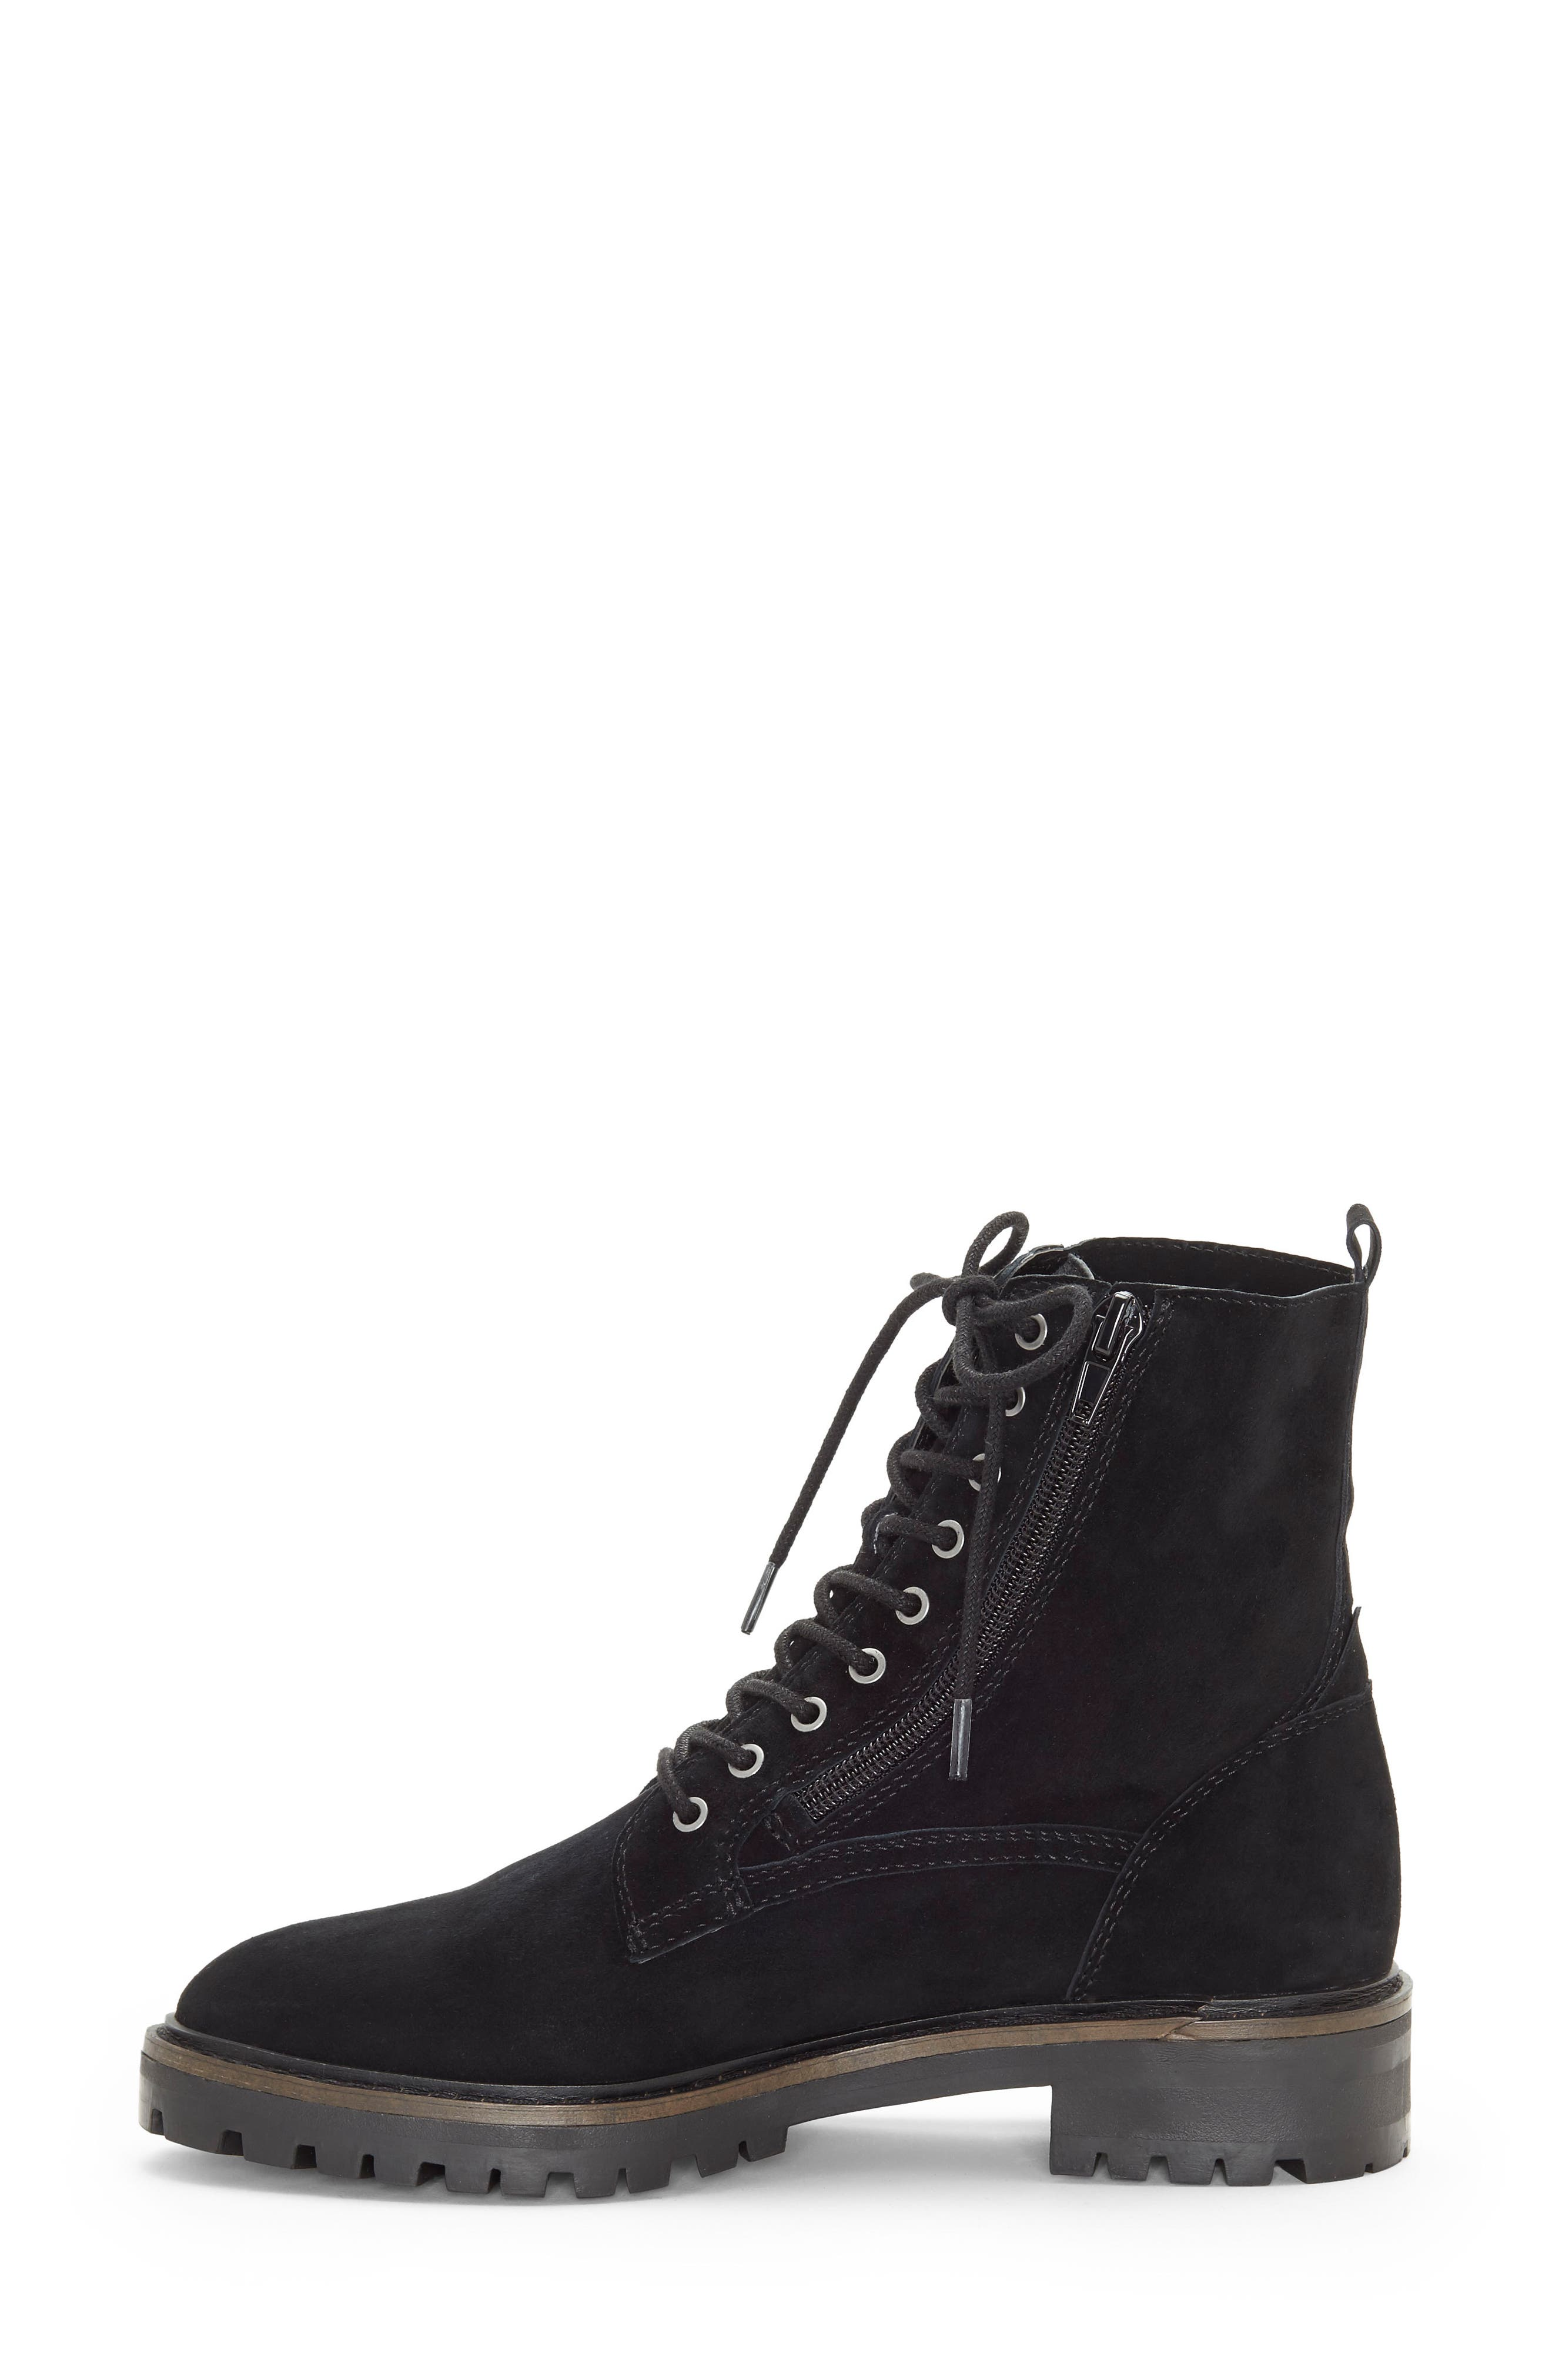 LUCKY BRAND, Idara Lace-Up Bootie, Alternate thumbnail 2, color, 001